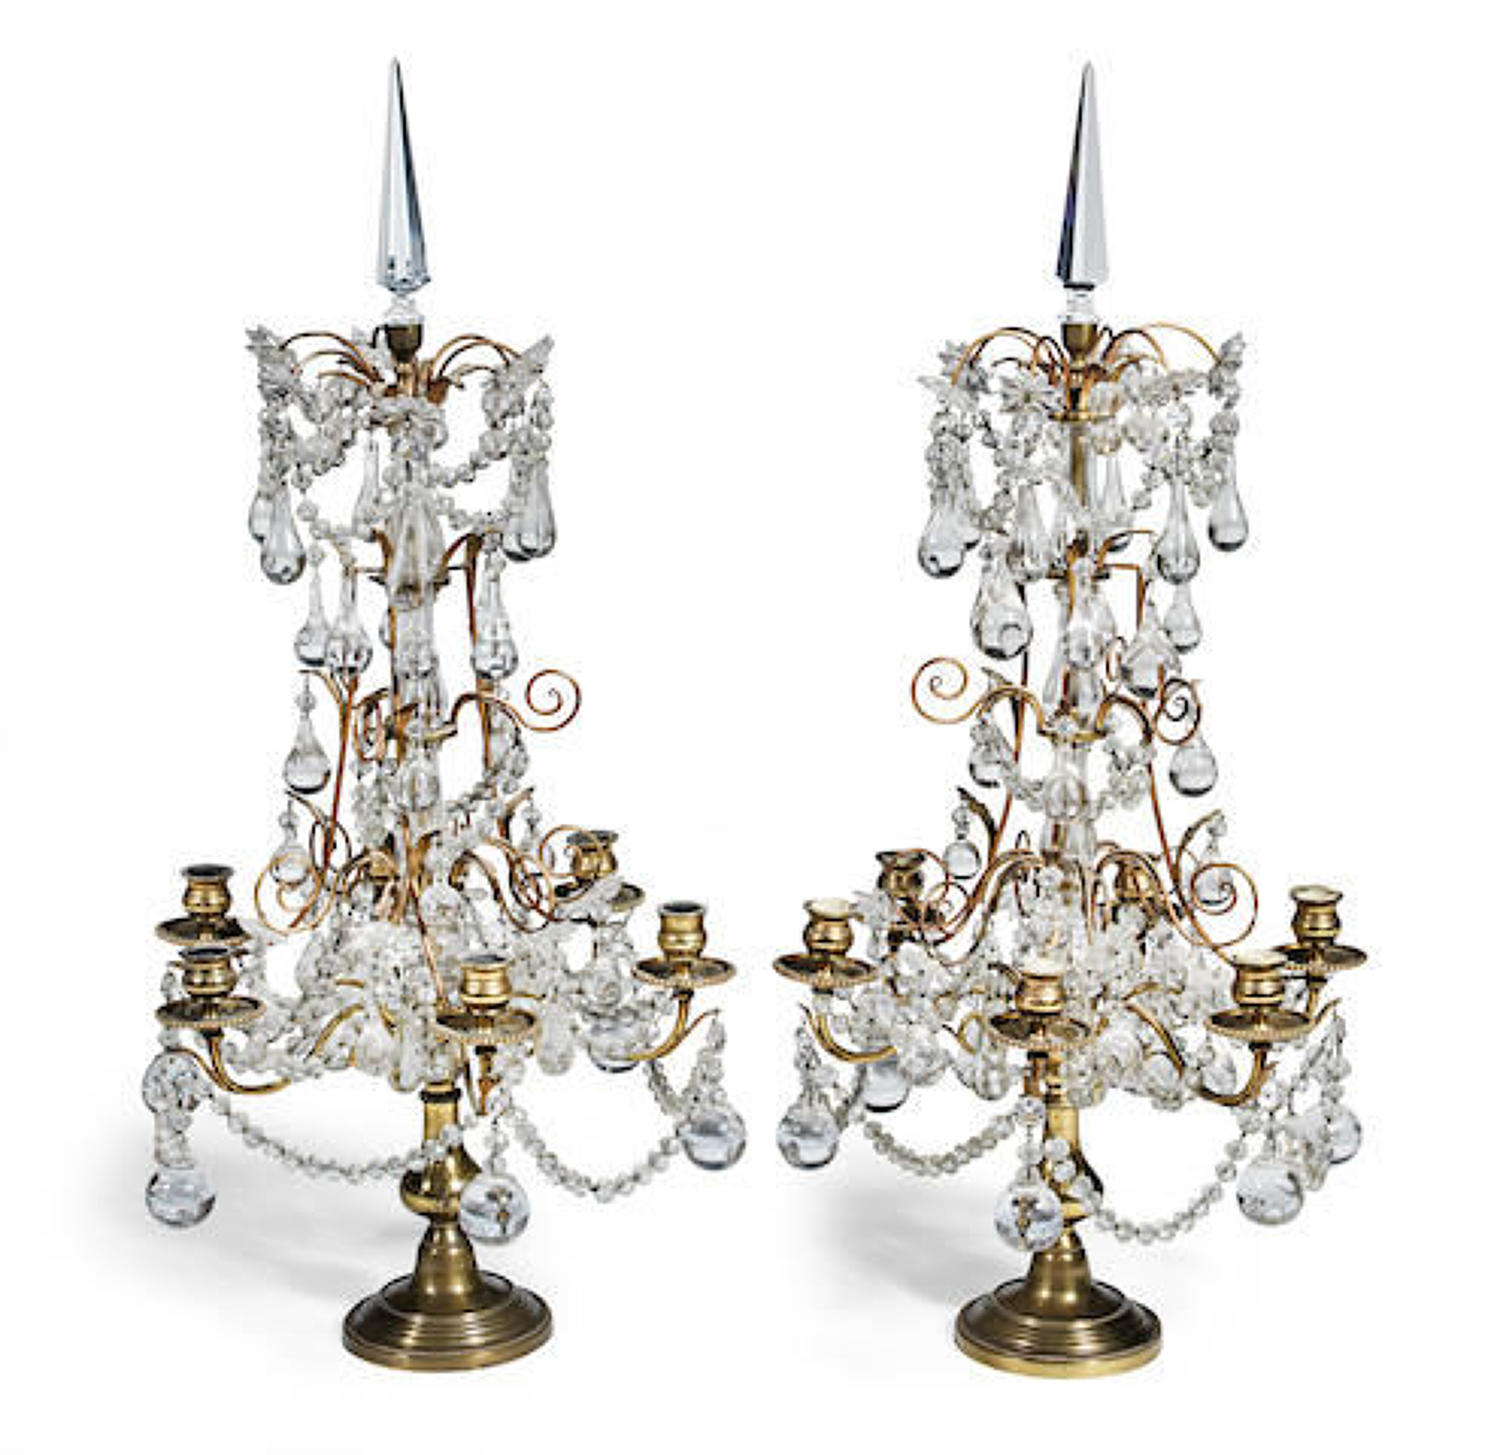 A pair of gilt-brass and cut glass girandoles